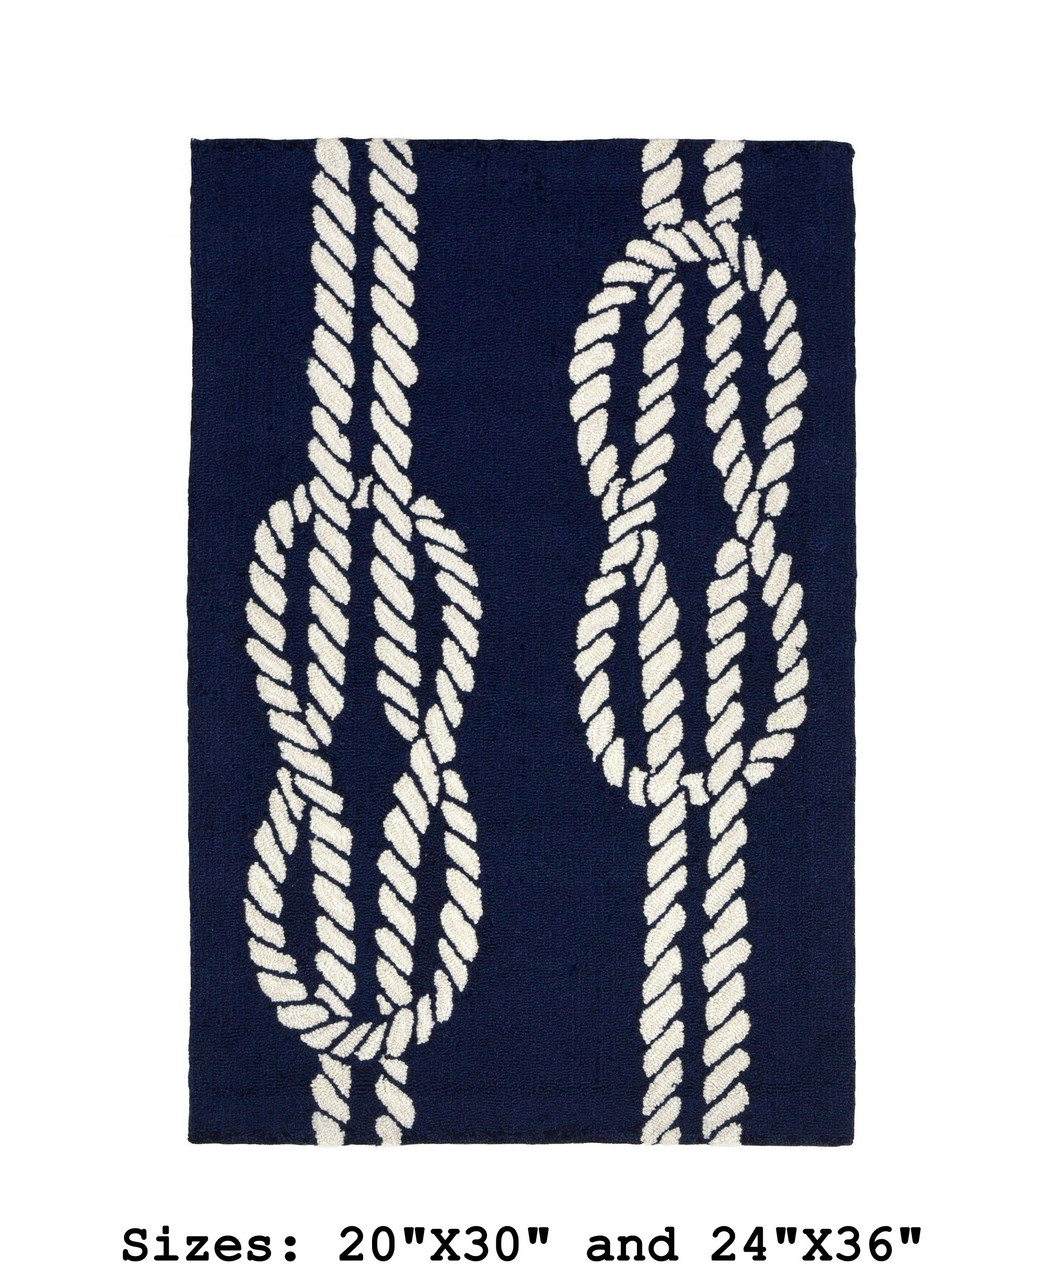 Navy Capri Nautical Ropes Indoor/Outdoor Rug - Small Rectangle